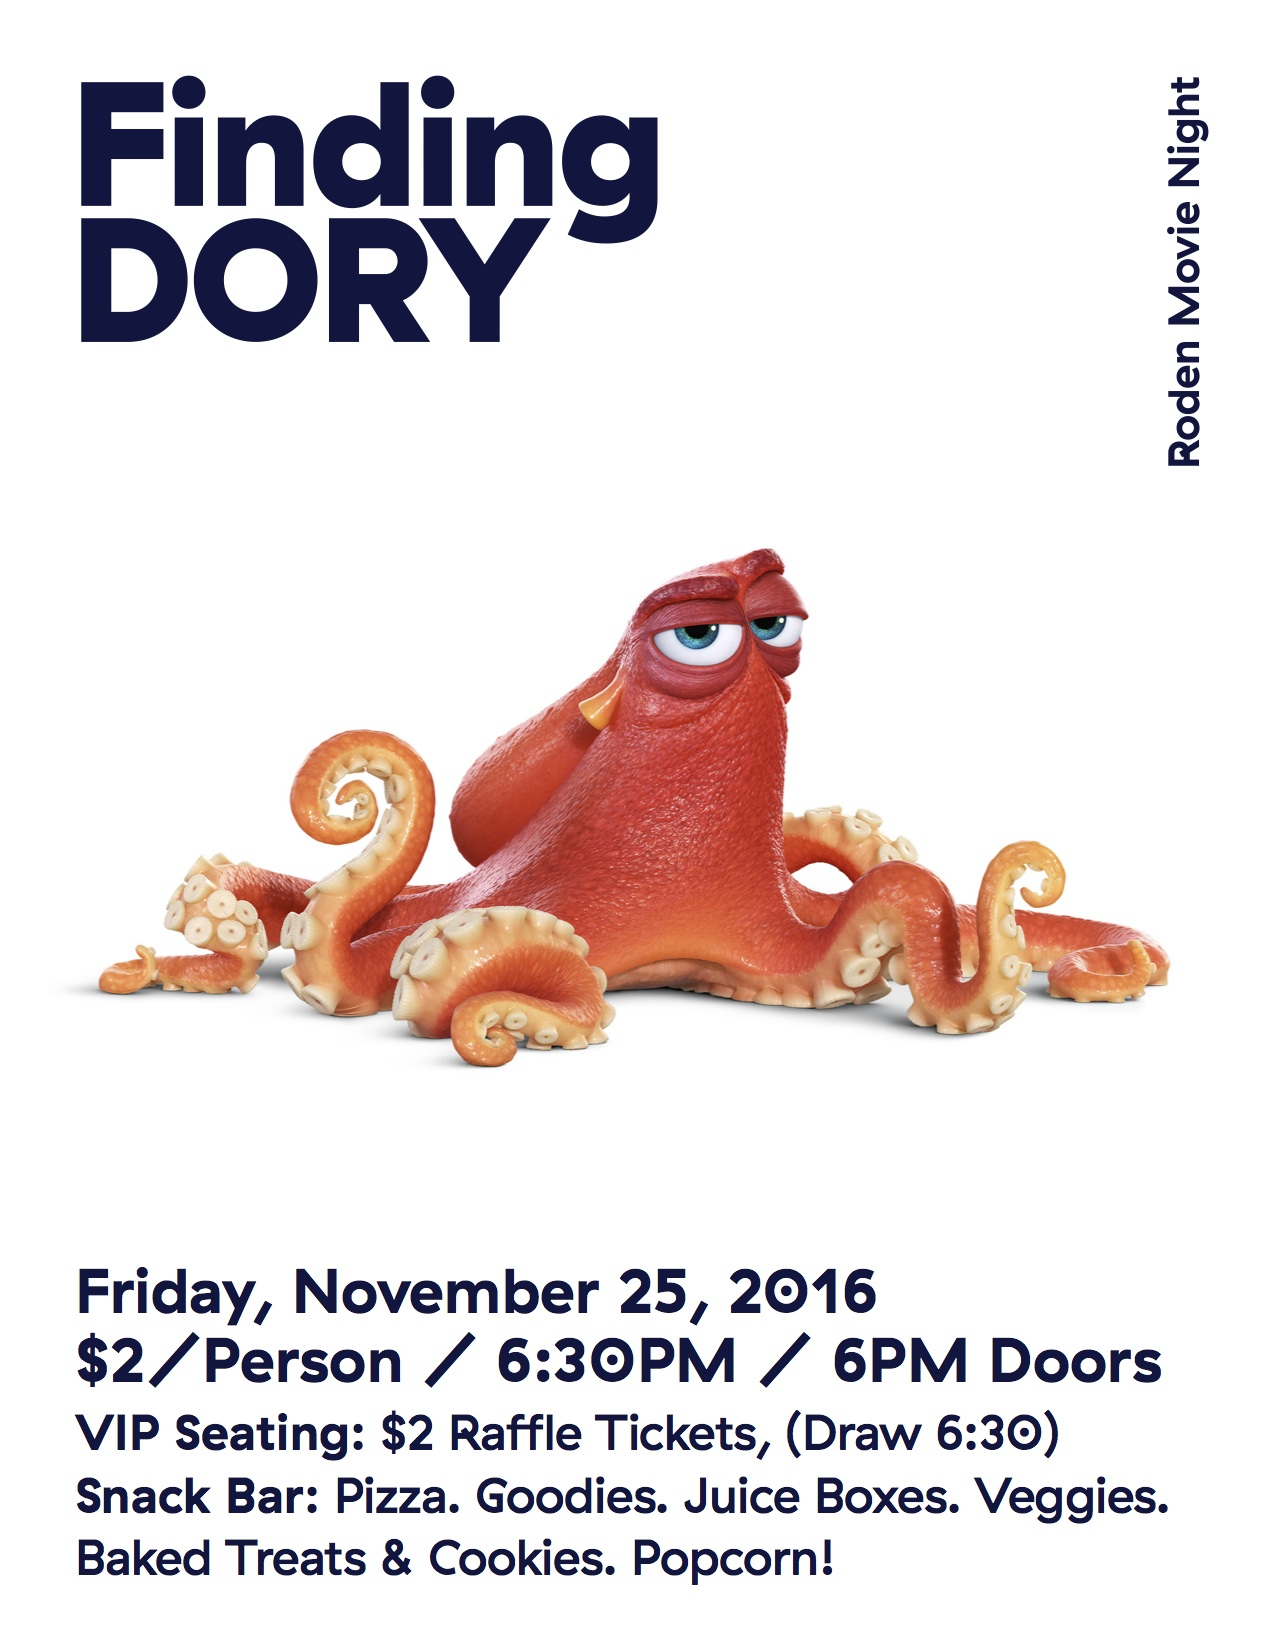 Roden_Movie_Poster_Finding_Dory (1)